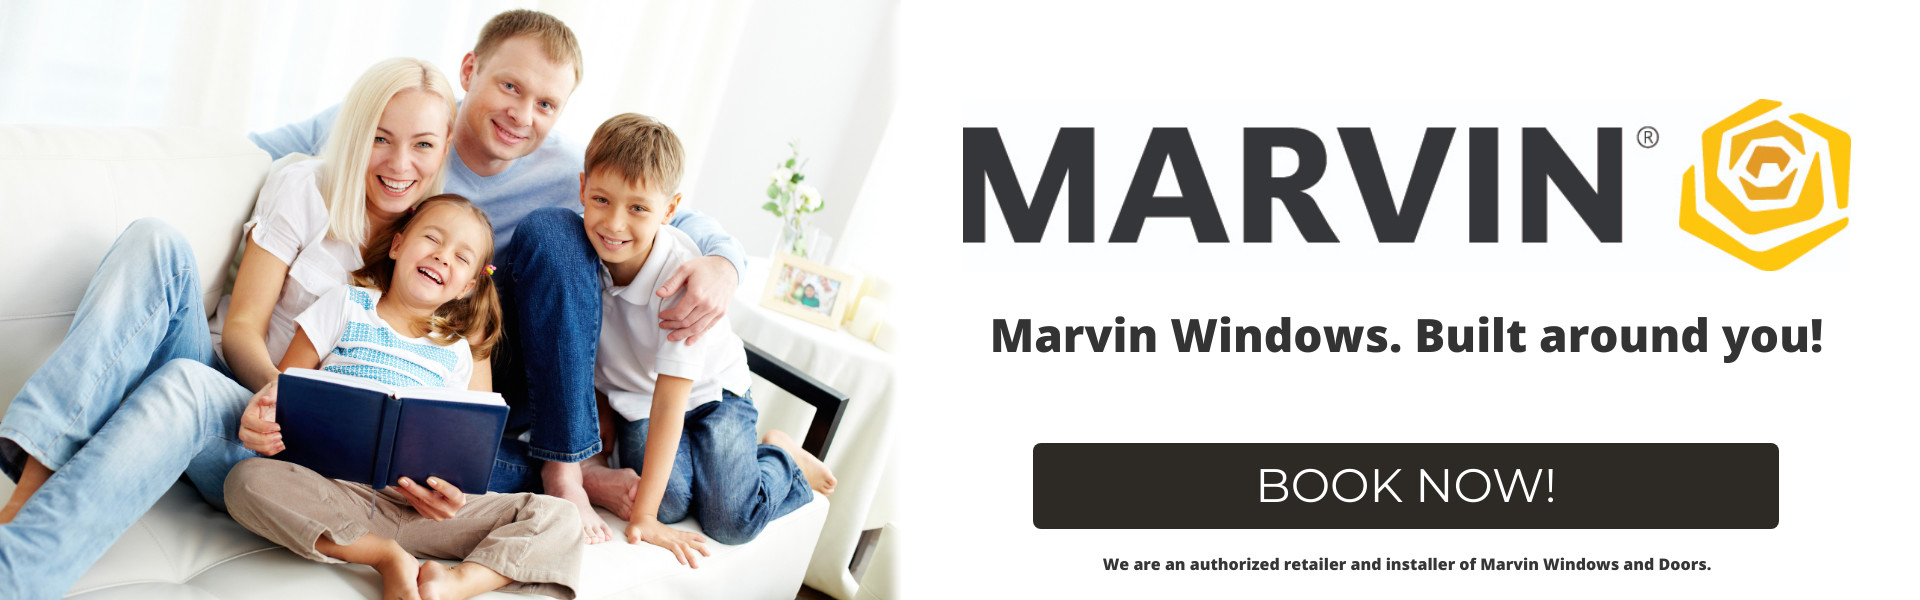 marvin windows and doors in denver co